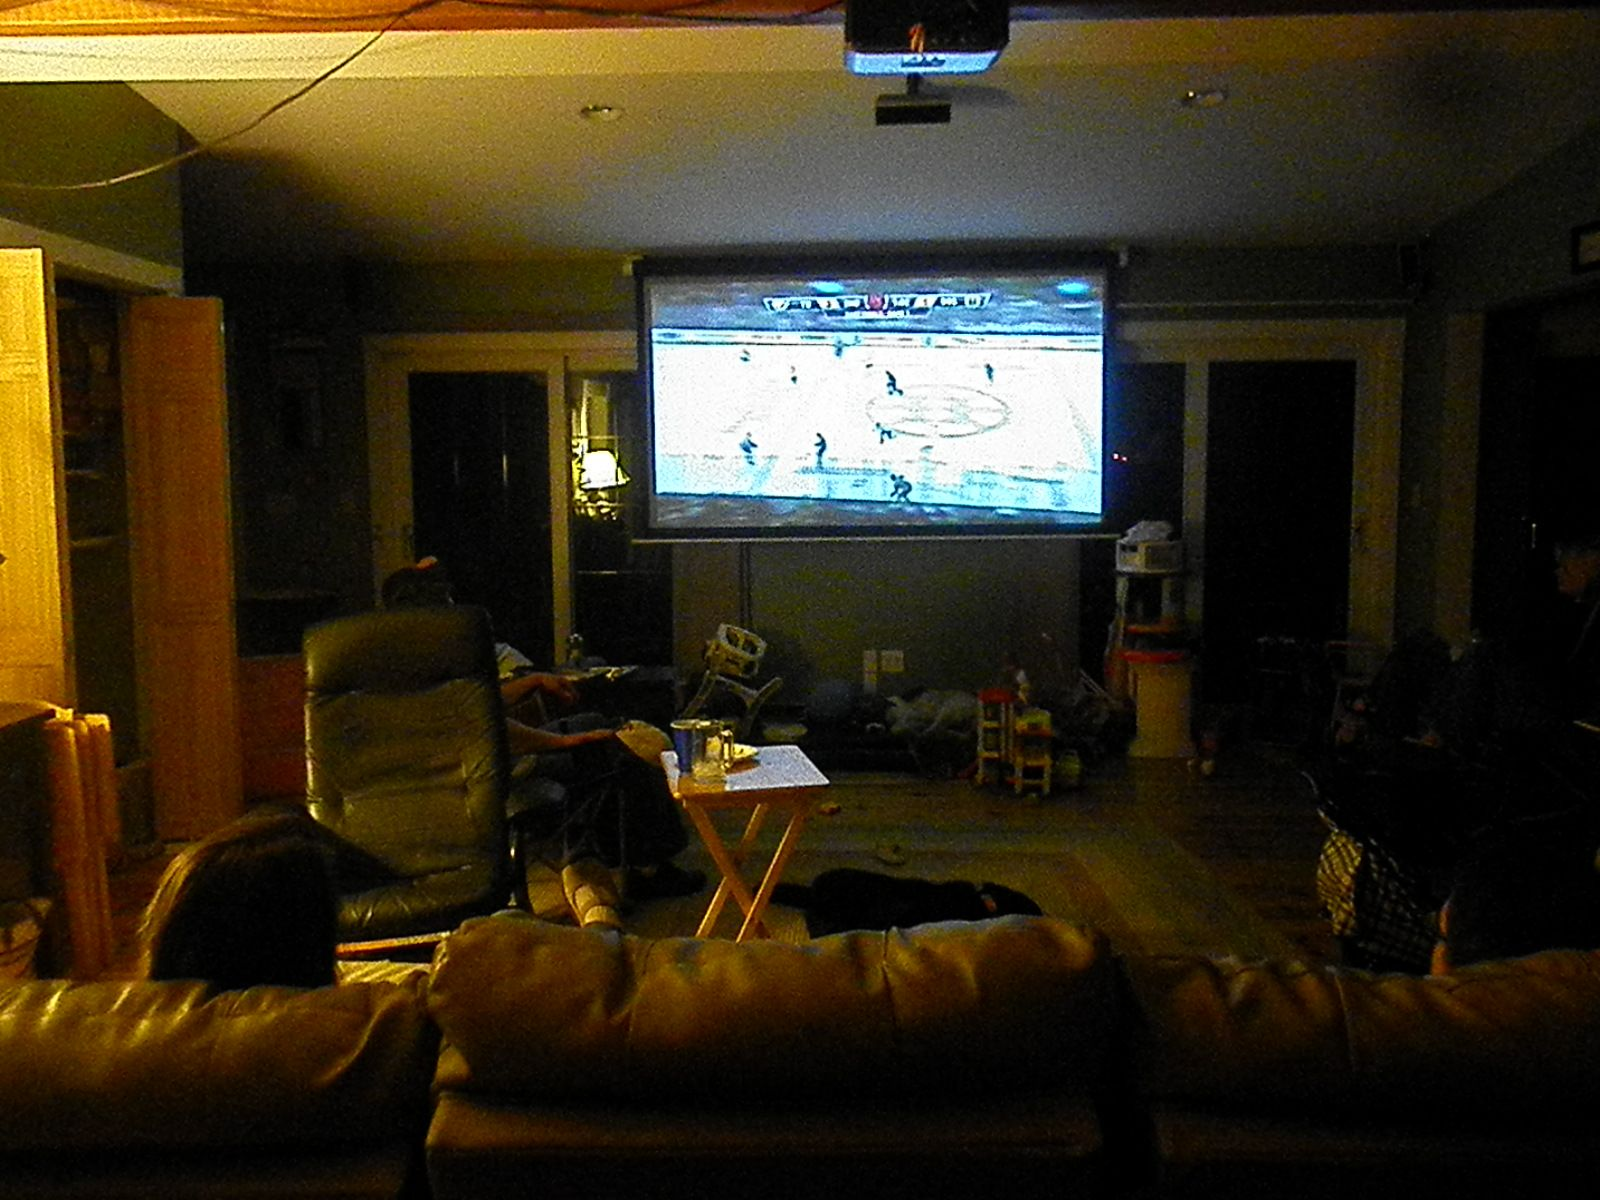 home video game room ideas   http   hdwallpaper info home video game room ideas   HD Wallpapers   HD Wallpapers   Pinterest   Video game rooms  Game rooms. home video game room ideas   http   hdwallpaper info home video